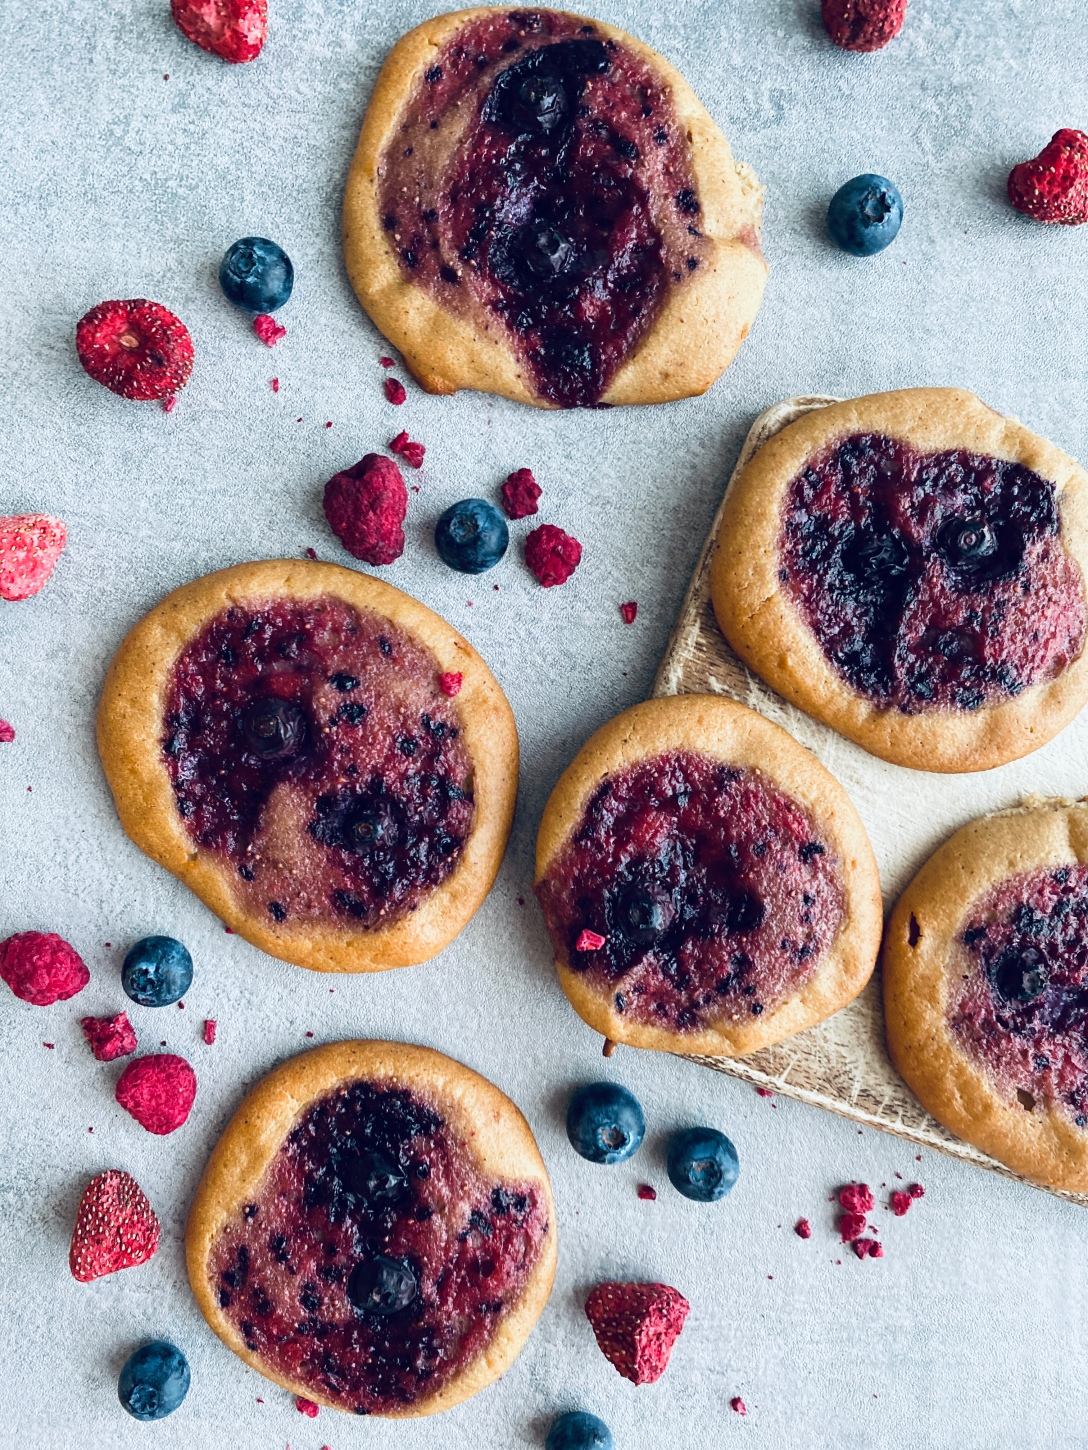 Healthy Berry Buns with Strawberries and Blueberries